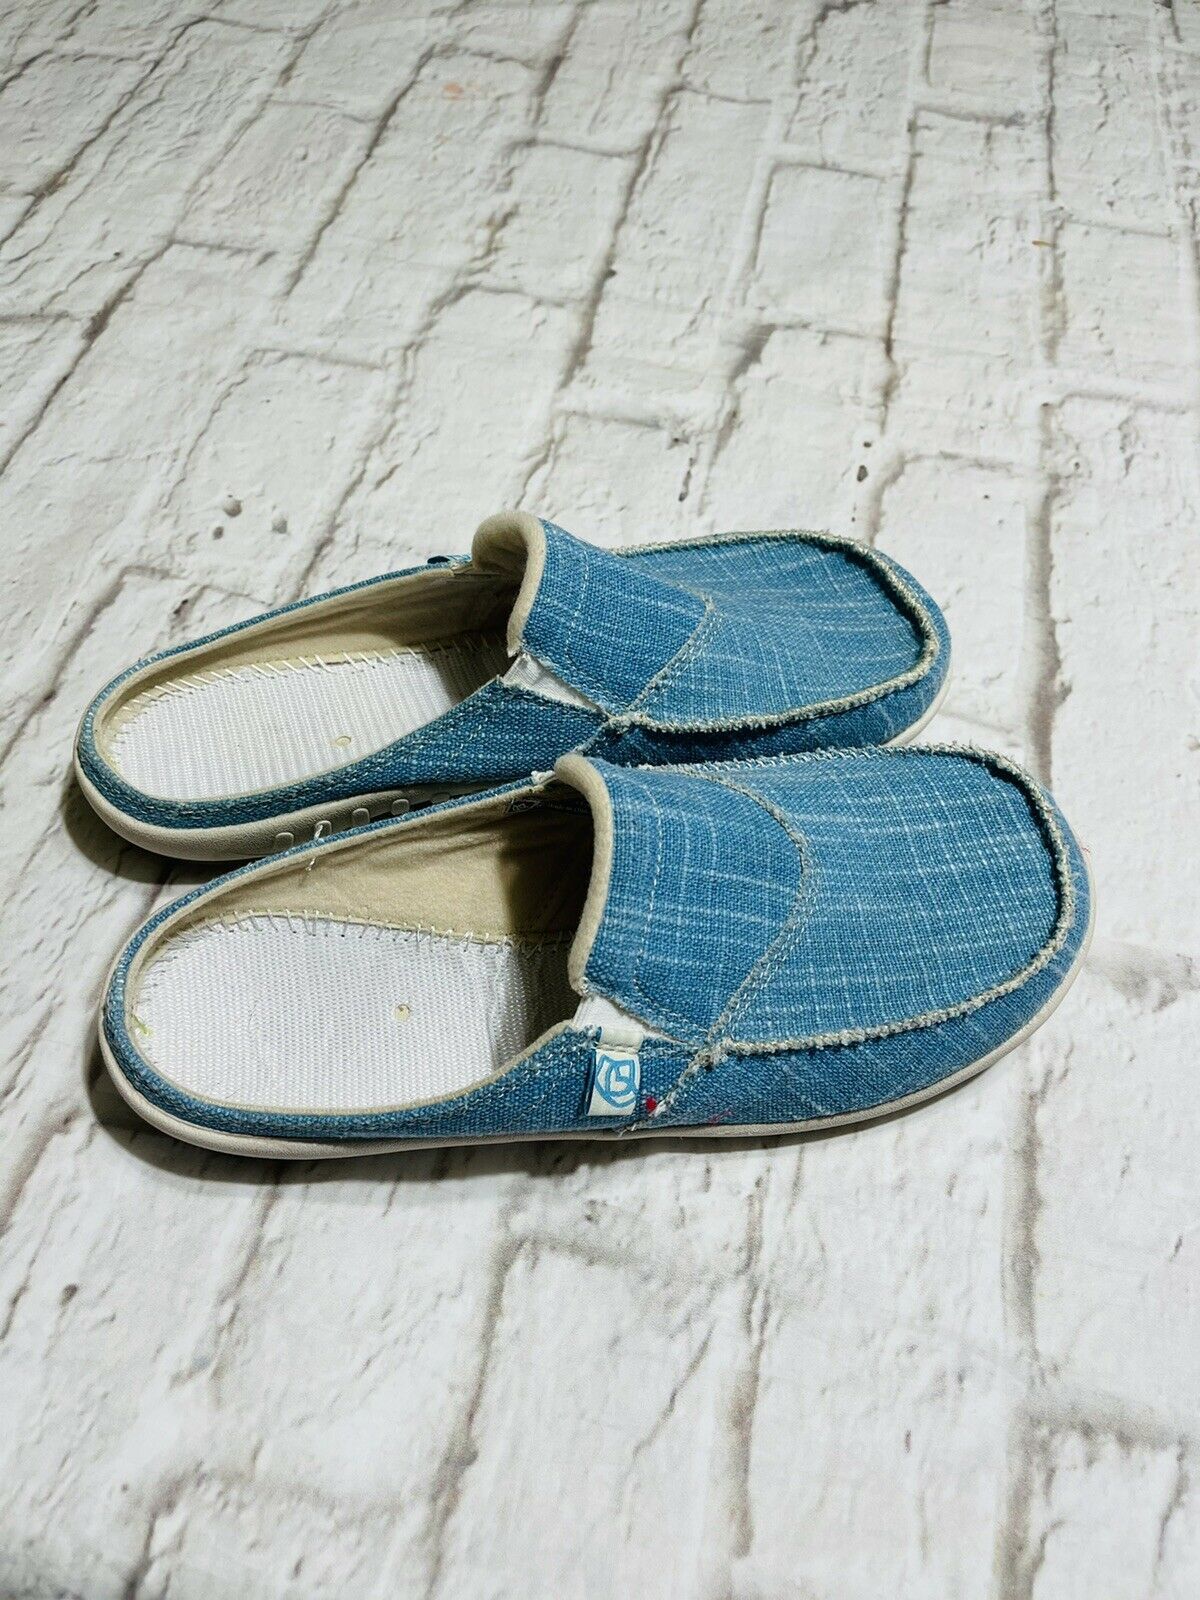 SPENCO Womens Sky Blue Canvas Slip on Comfort Mules Slide Shoes Size W10. See*